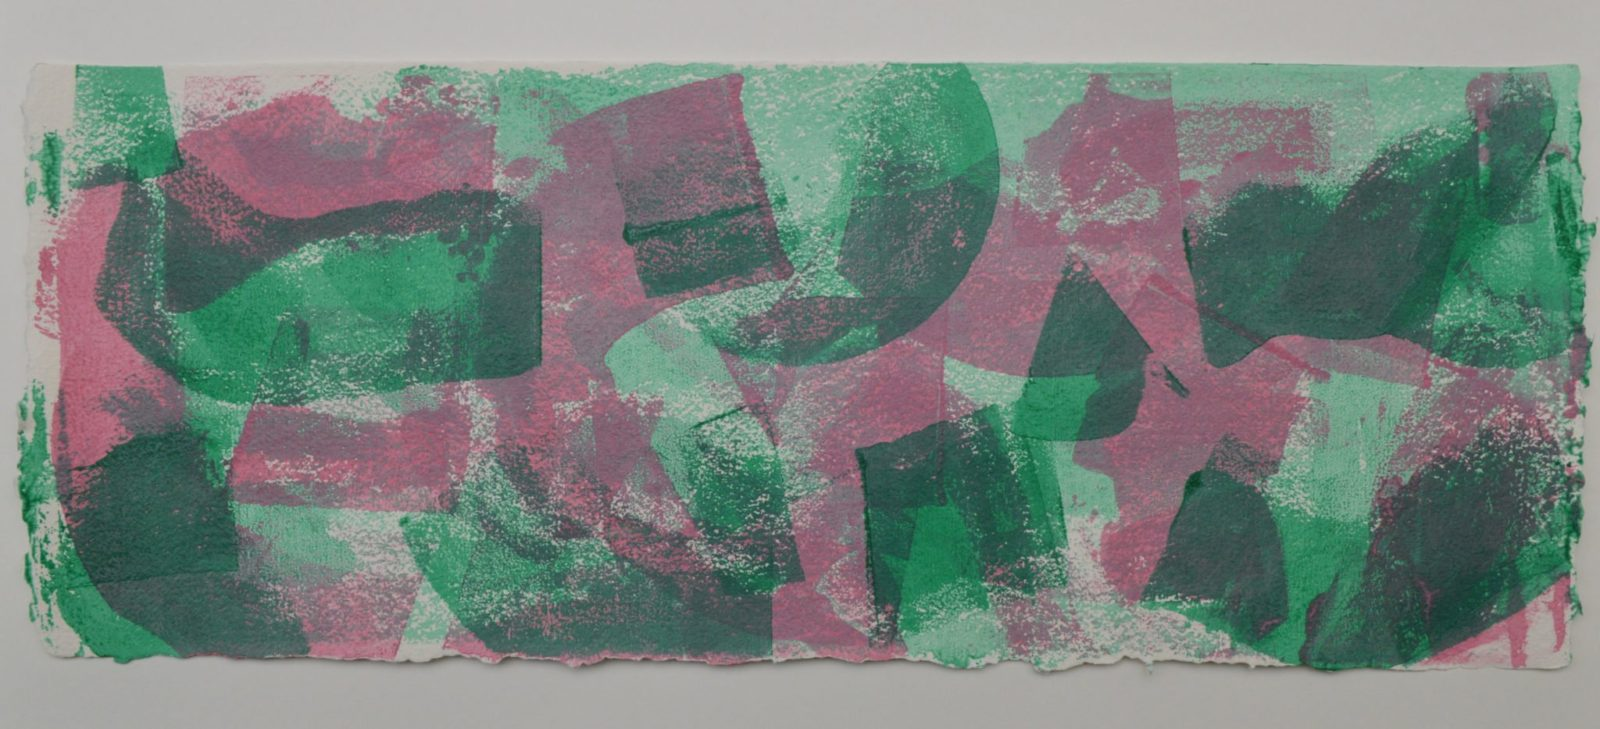 Shifting Sand 1 in bright green, pink and pale green, on Moulin de Larroque Lys paper. One of a series of 6 mono screen prints inspired by the movement found in opals.